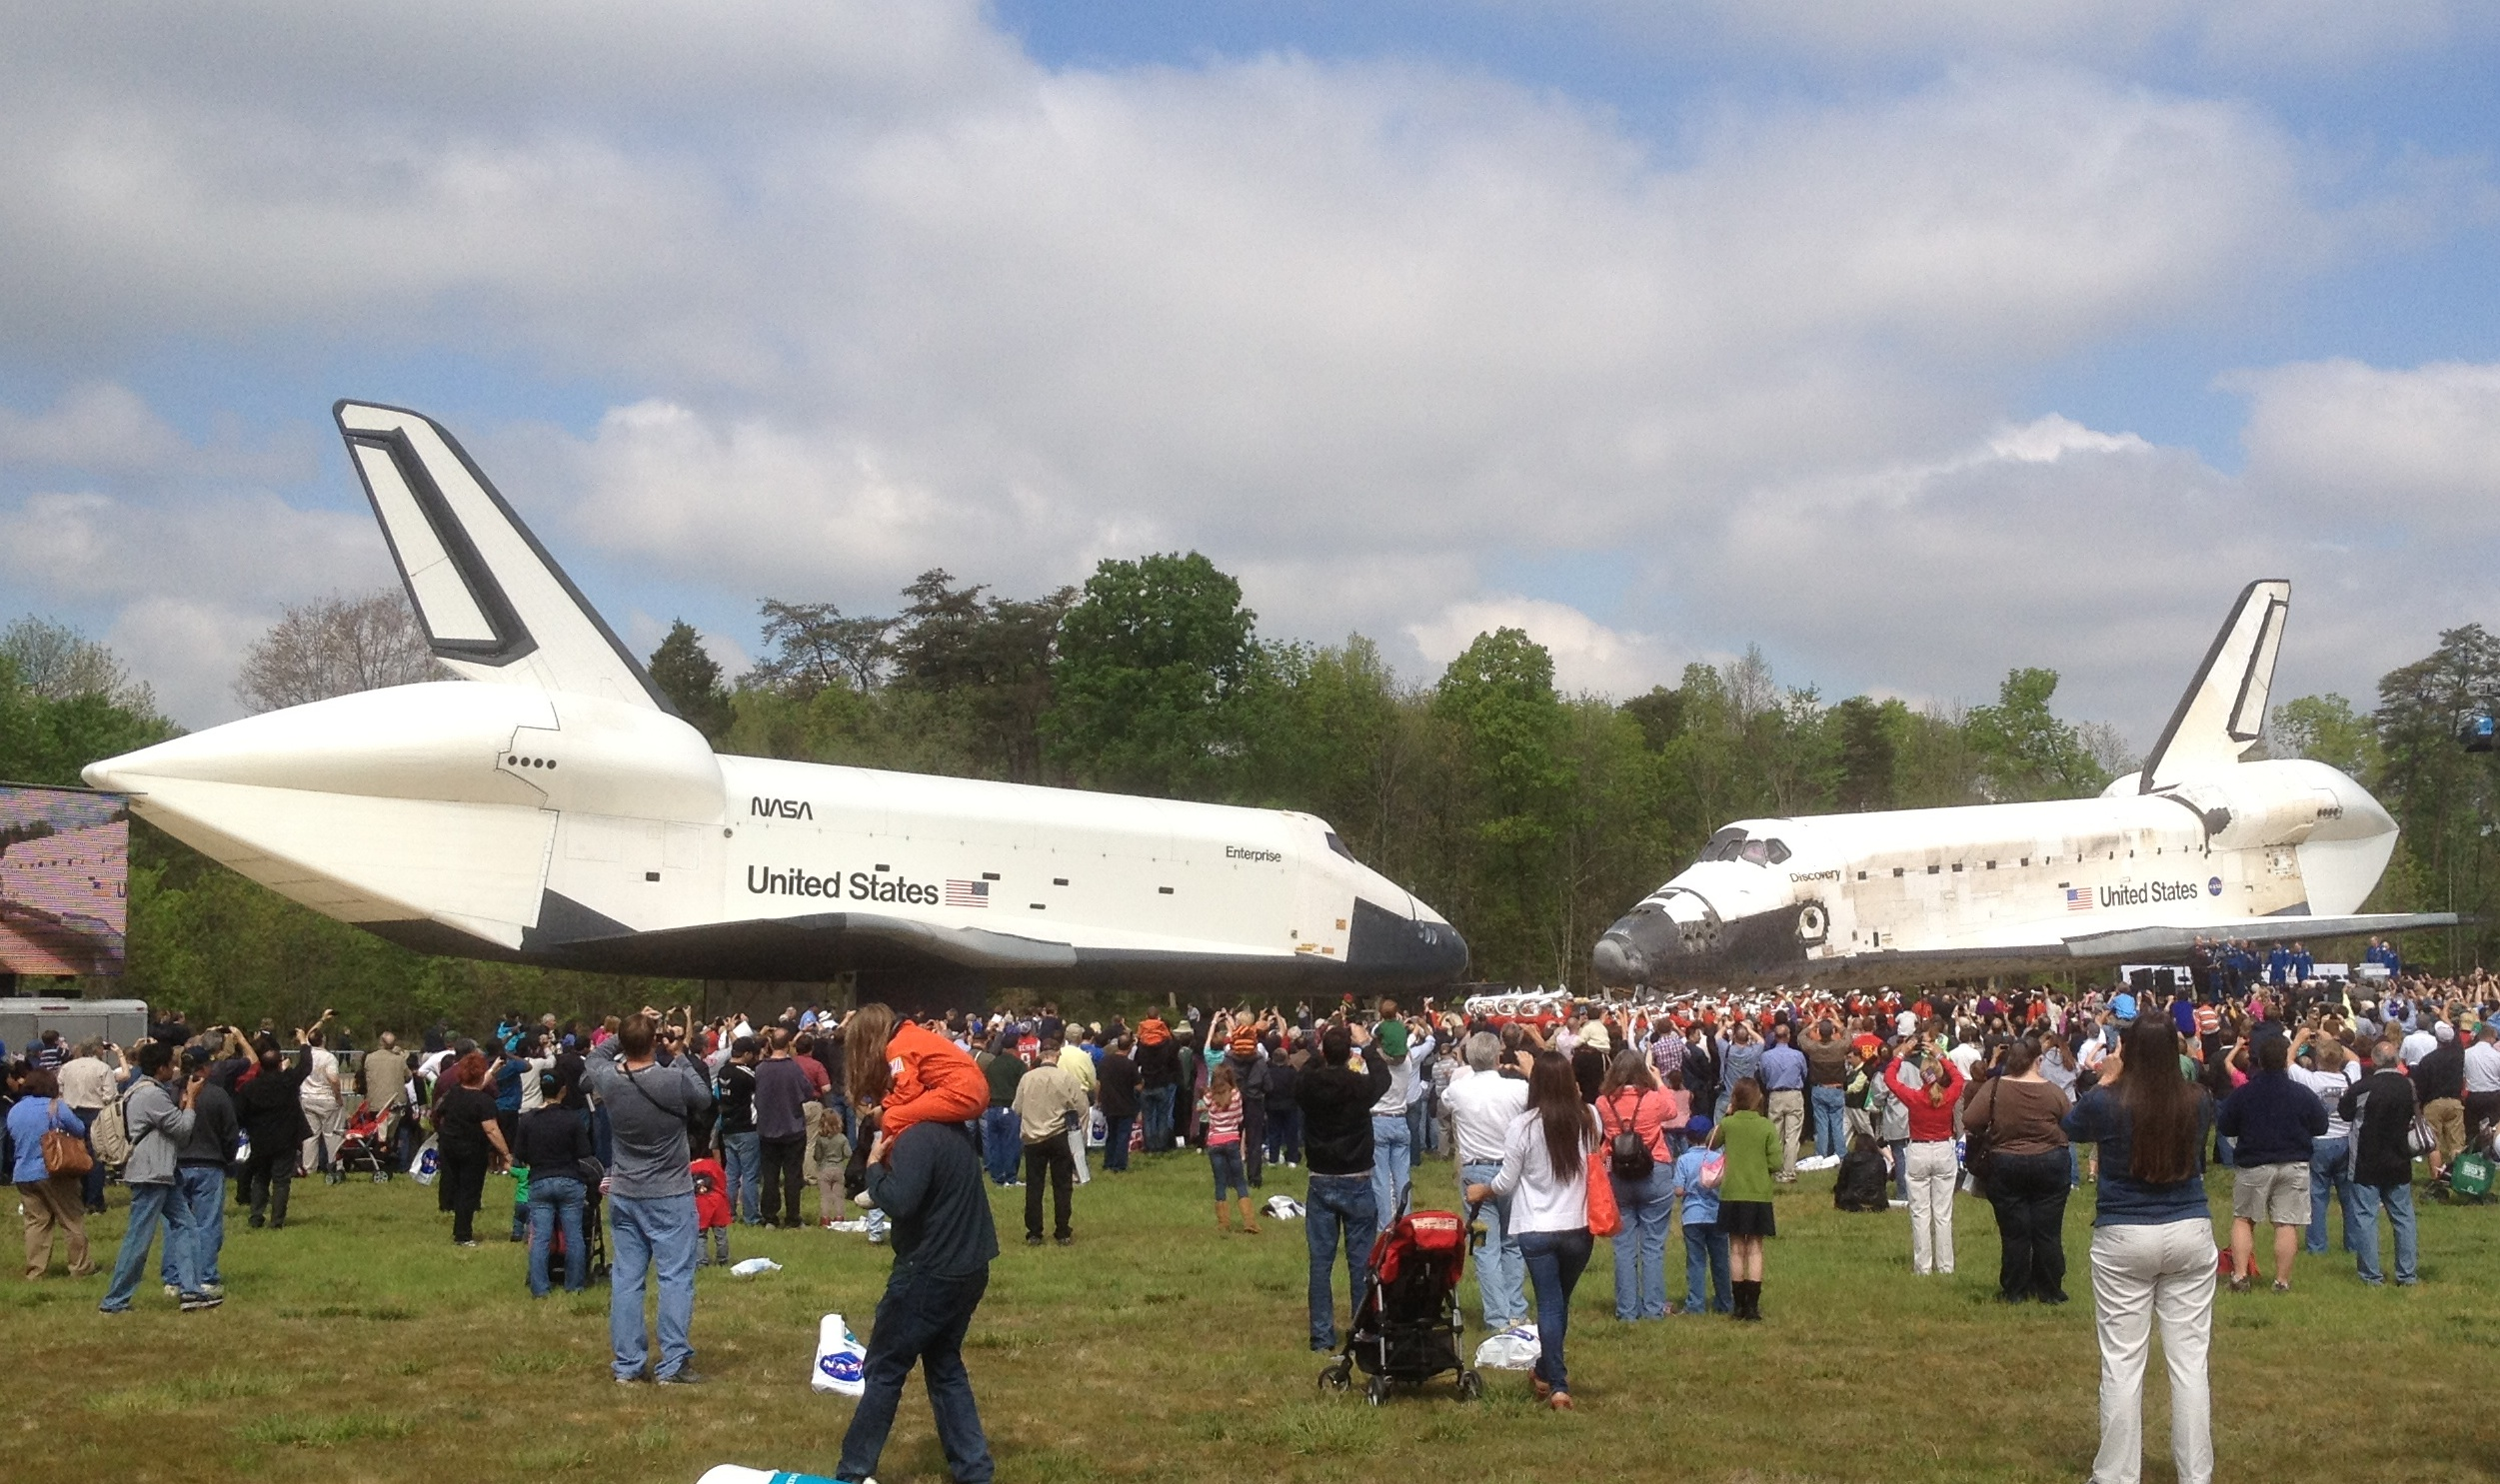 New Homes For Space Shuttle Orbiters After Retirement NASA - Nasa museums in usa